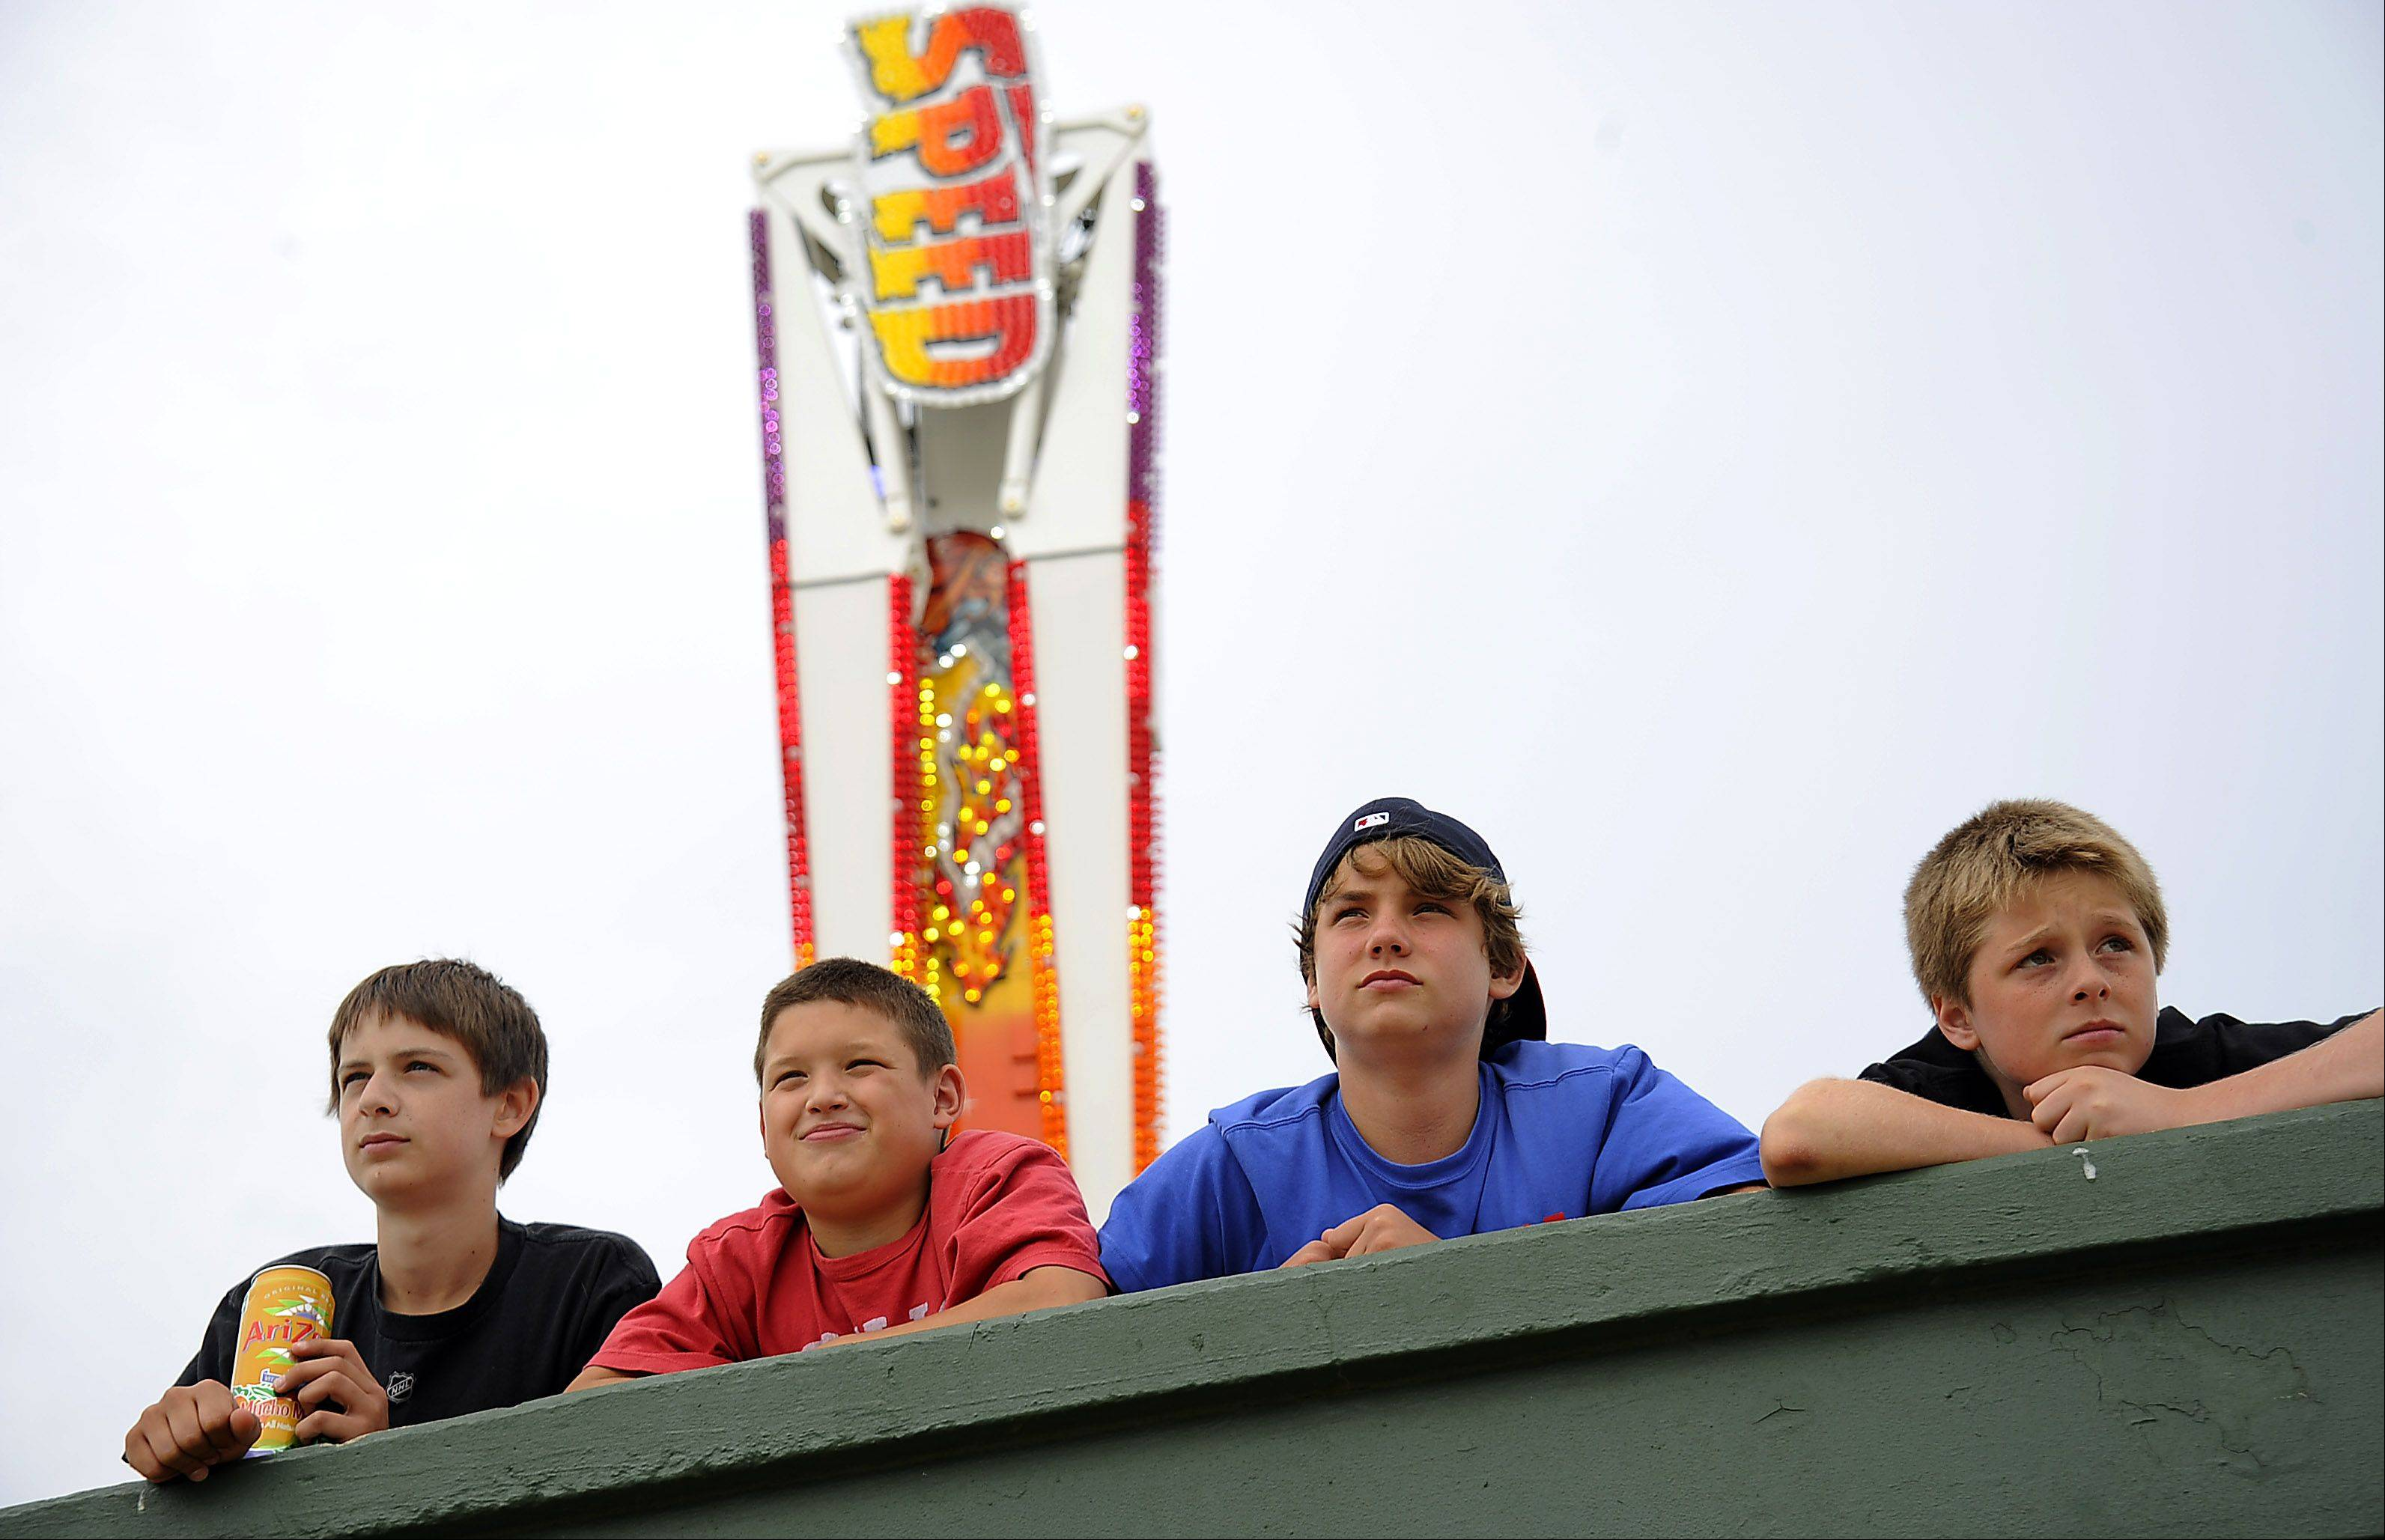 Watching the Frontier Days festival come to life from atop a baseball dugout in Recreation Park are, from left: Kevin Donohue, 13; Jace O'Hara, 12; Riley Rundquist, 12 and Joey Belmonte, 12, all of Arlington Heights.